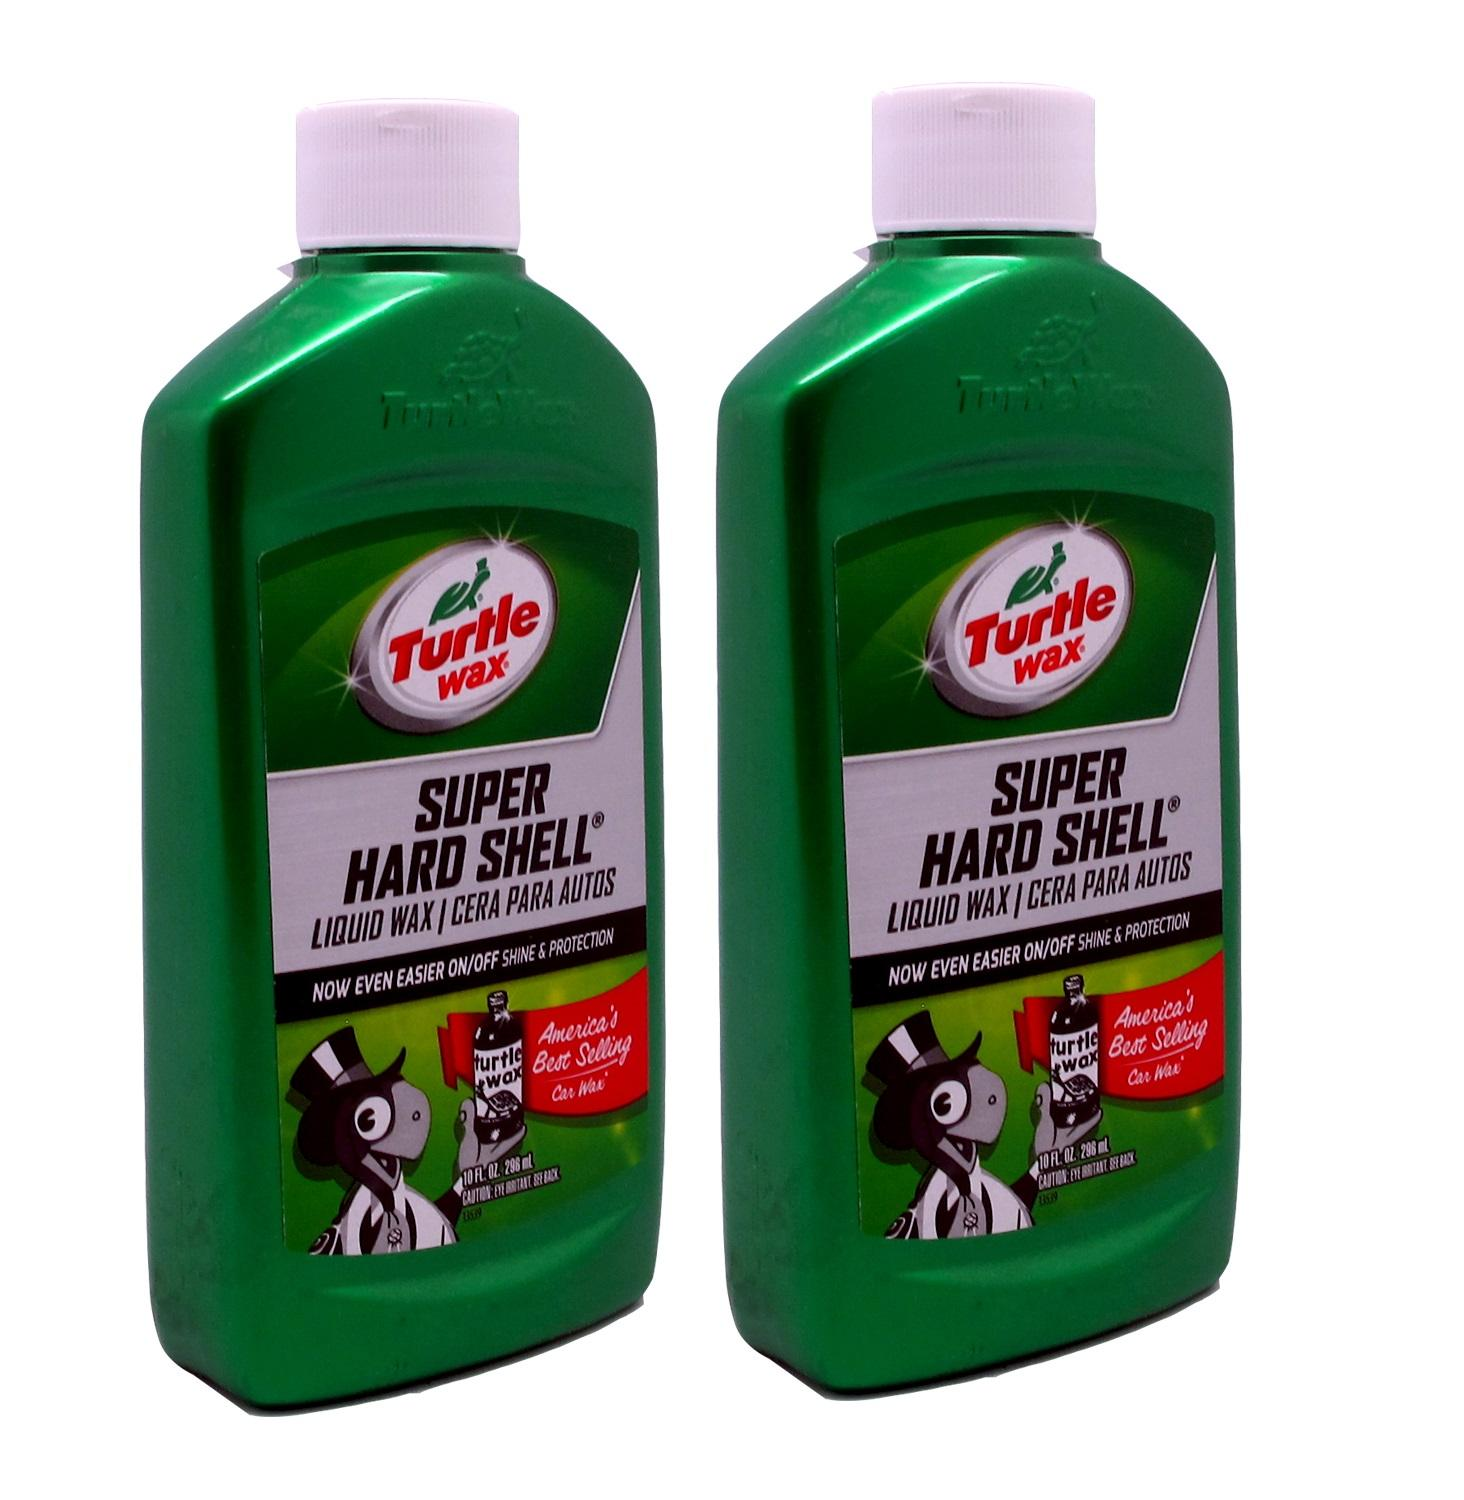 How To Buy Turtle Wax T 238 Scratch And Swirl Remover 325ml Set Of 2 Turtlewax 319 Jet Back Spray Detailer 127r Super Hard Shell 296ml Bundle